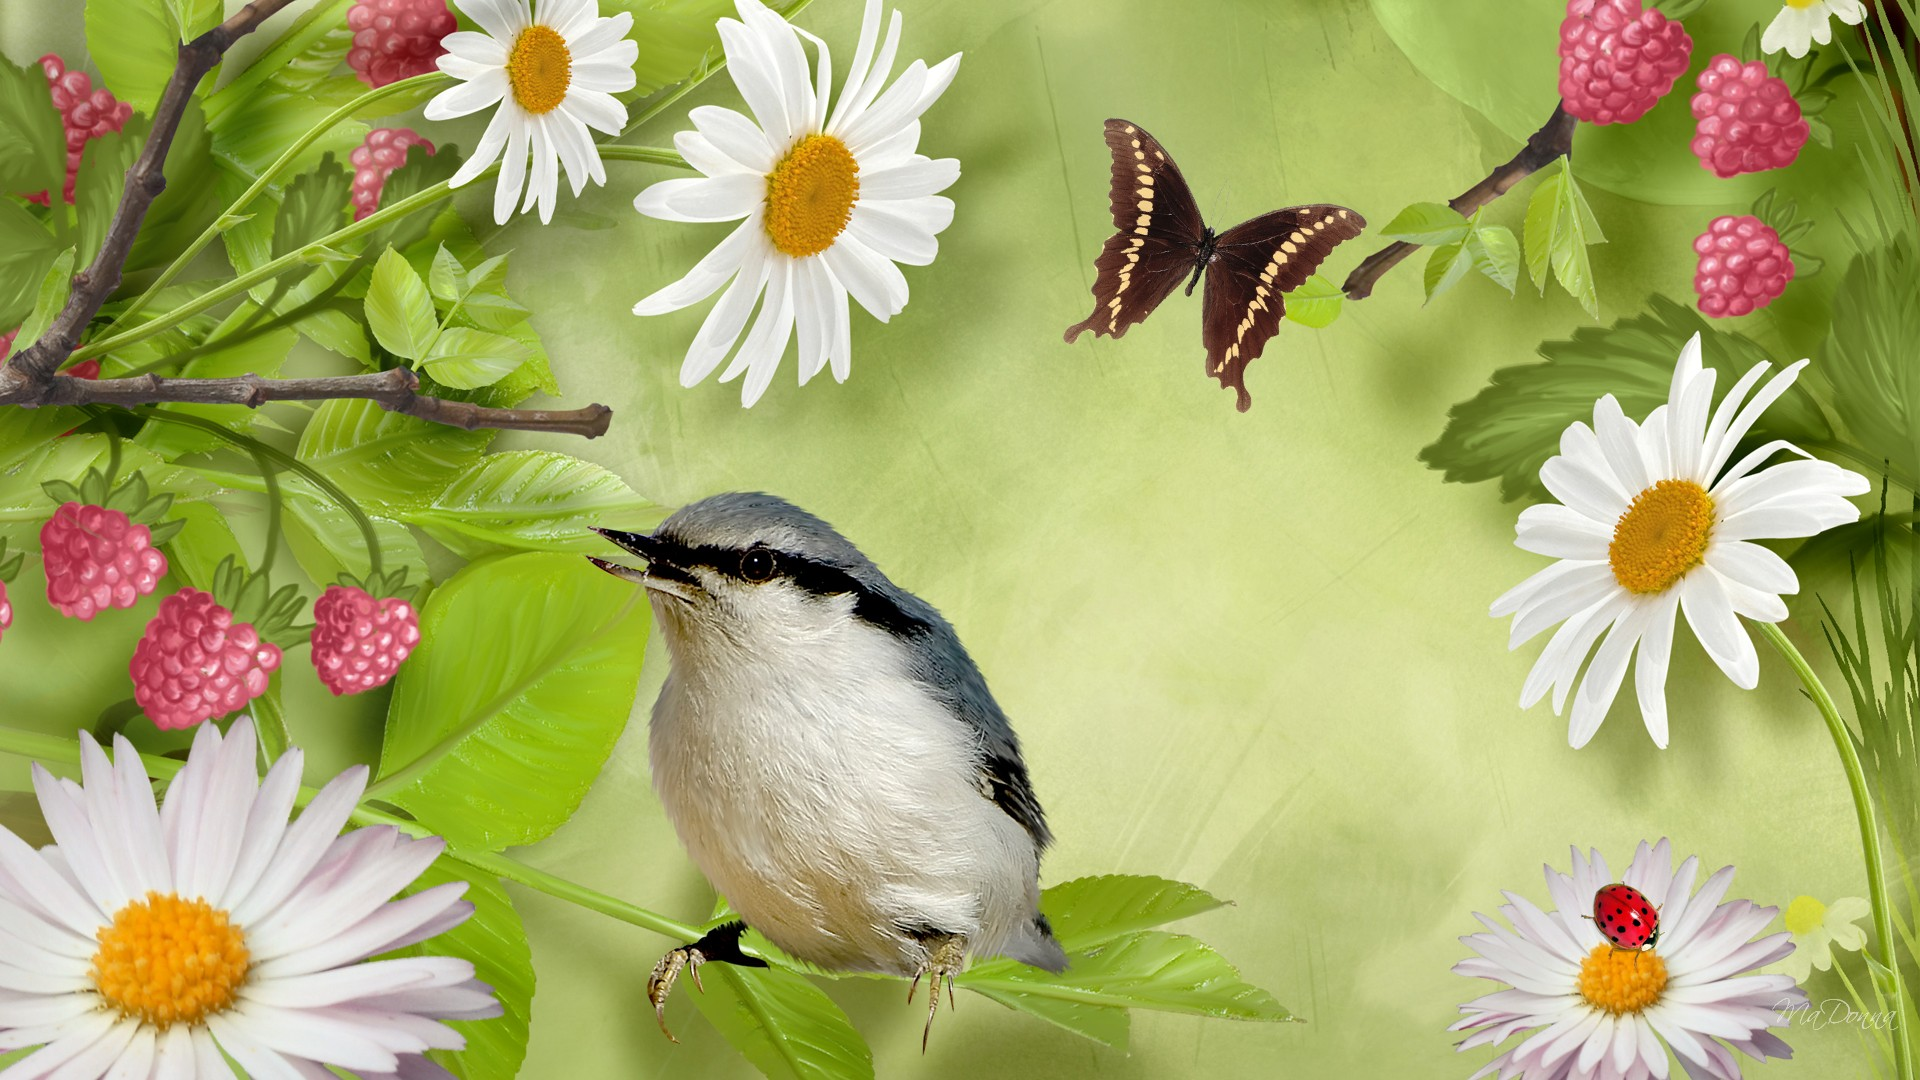 Beautiful Pictures Of Flowers And Butterflies Birds How To Attract Birds And Butterflies To Your Garden A Andp